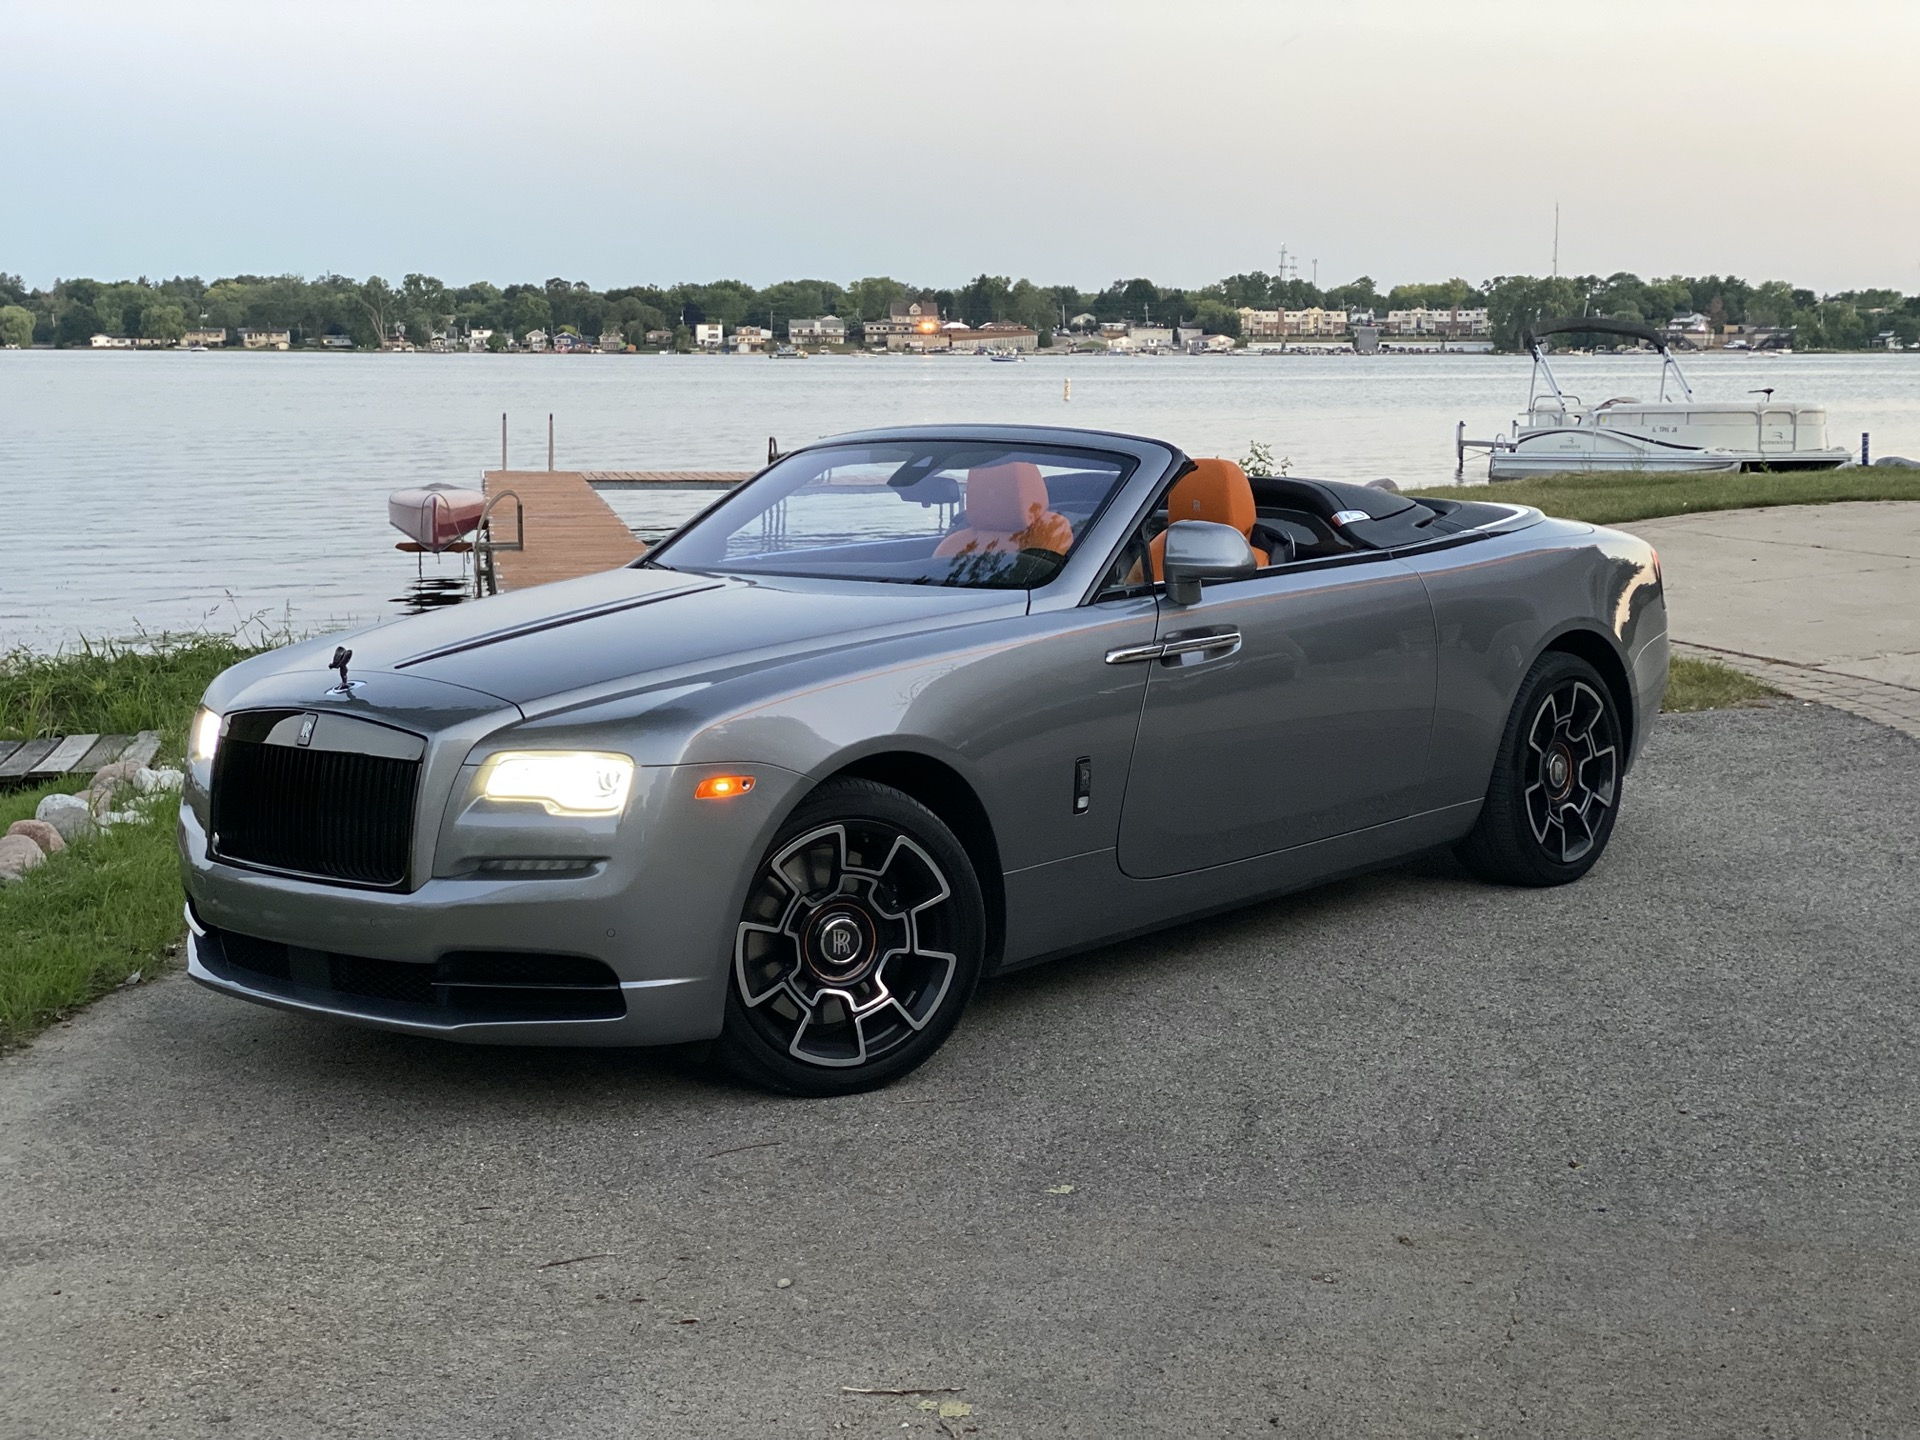 First drive review: The conspicuous case of the $477,000 Rolls-Royce Dawn Black Badge